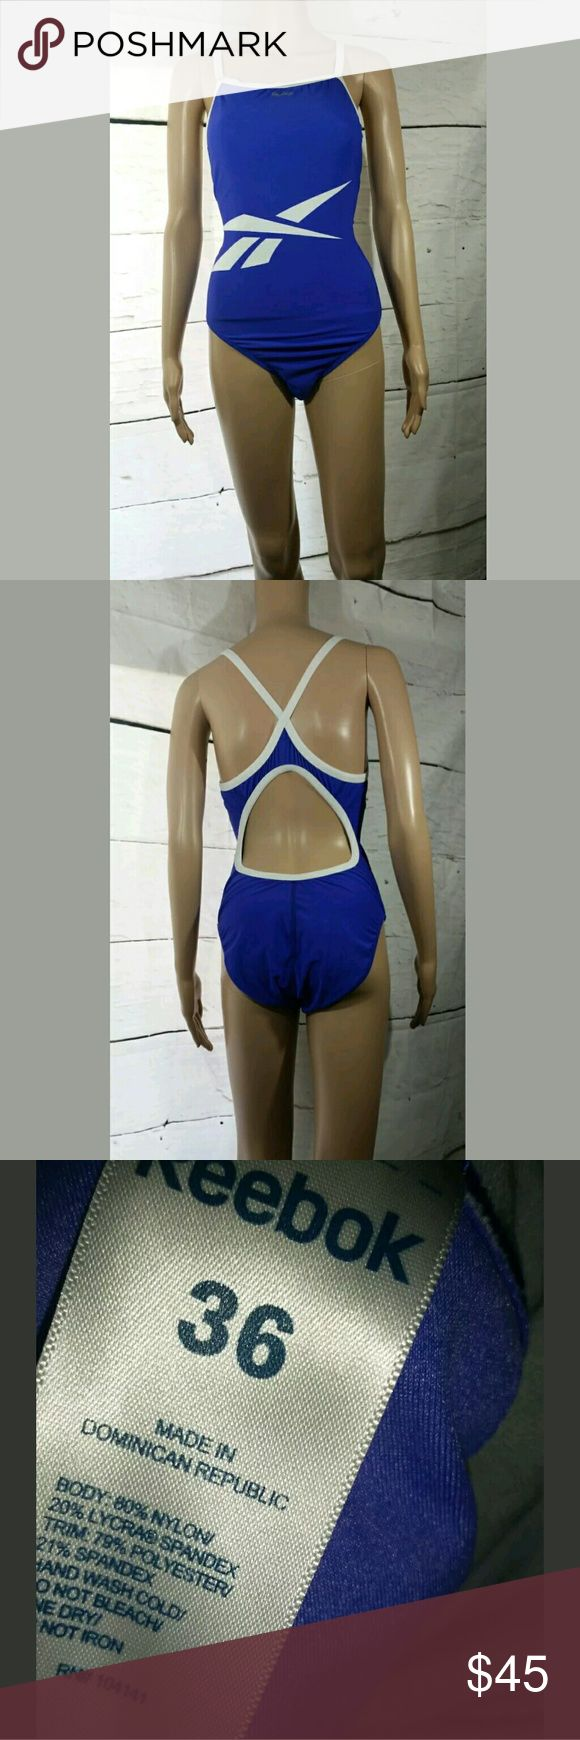 Reebok One Piece Swimsuit Cut Out Back Reebok One Piece Swimsuit Cut Out Back Purple White 36 / Large  Excellent used condition. Size 36/ Large.  AB Reebok Swim One Pieces